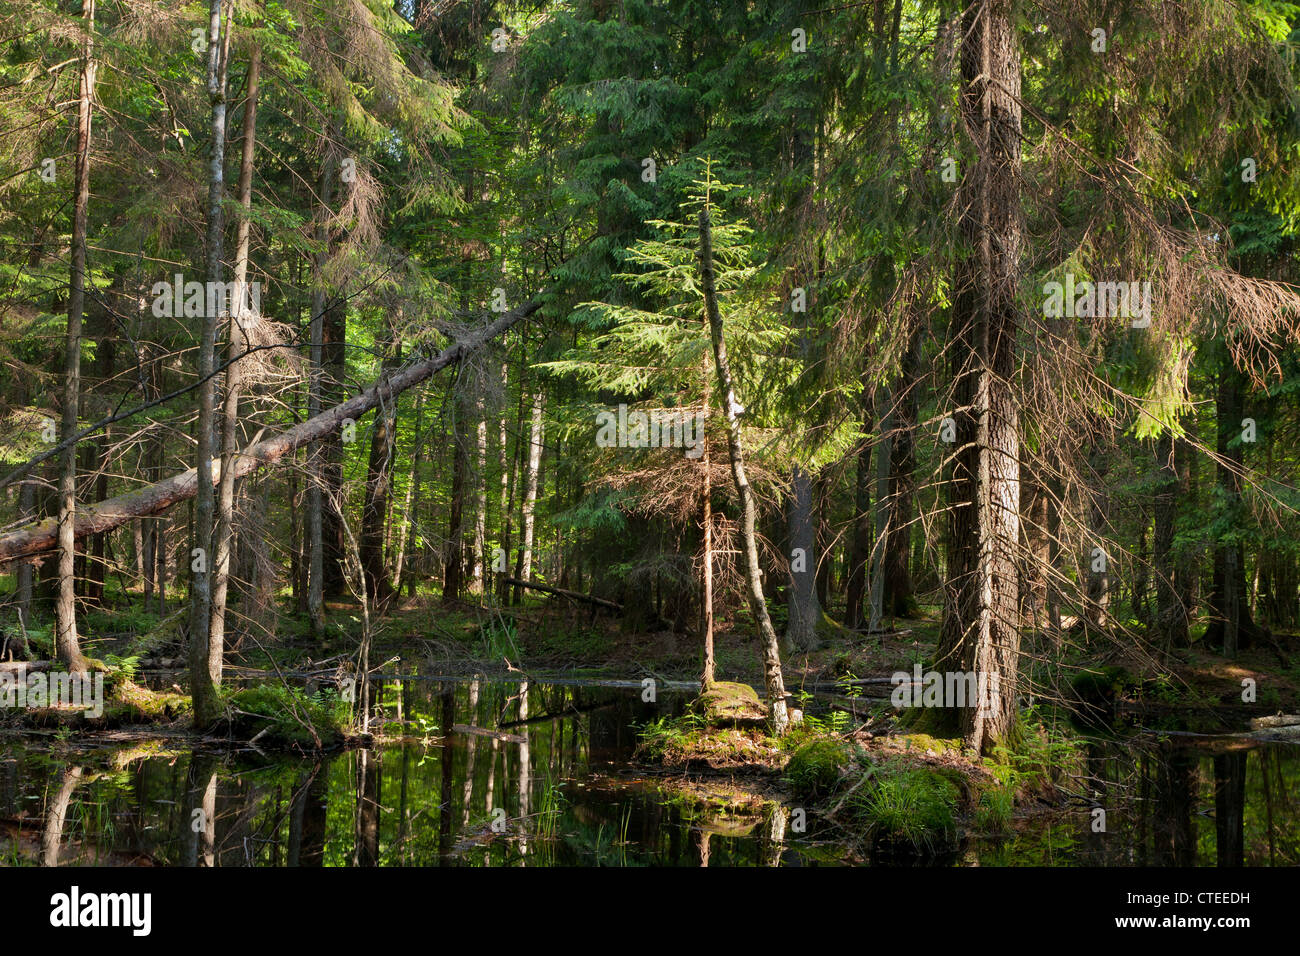 Coniferous stand of Bialowieza Forest in summer with spruces in water - Stock Image